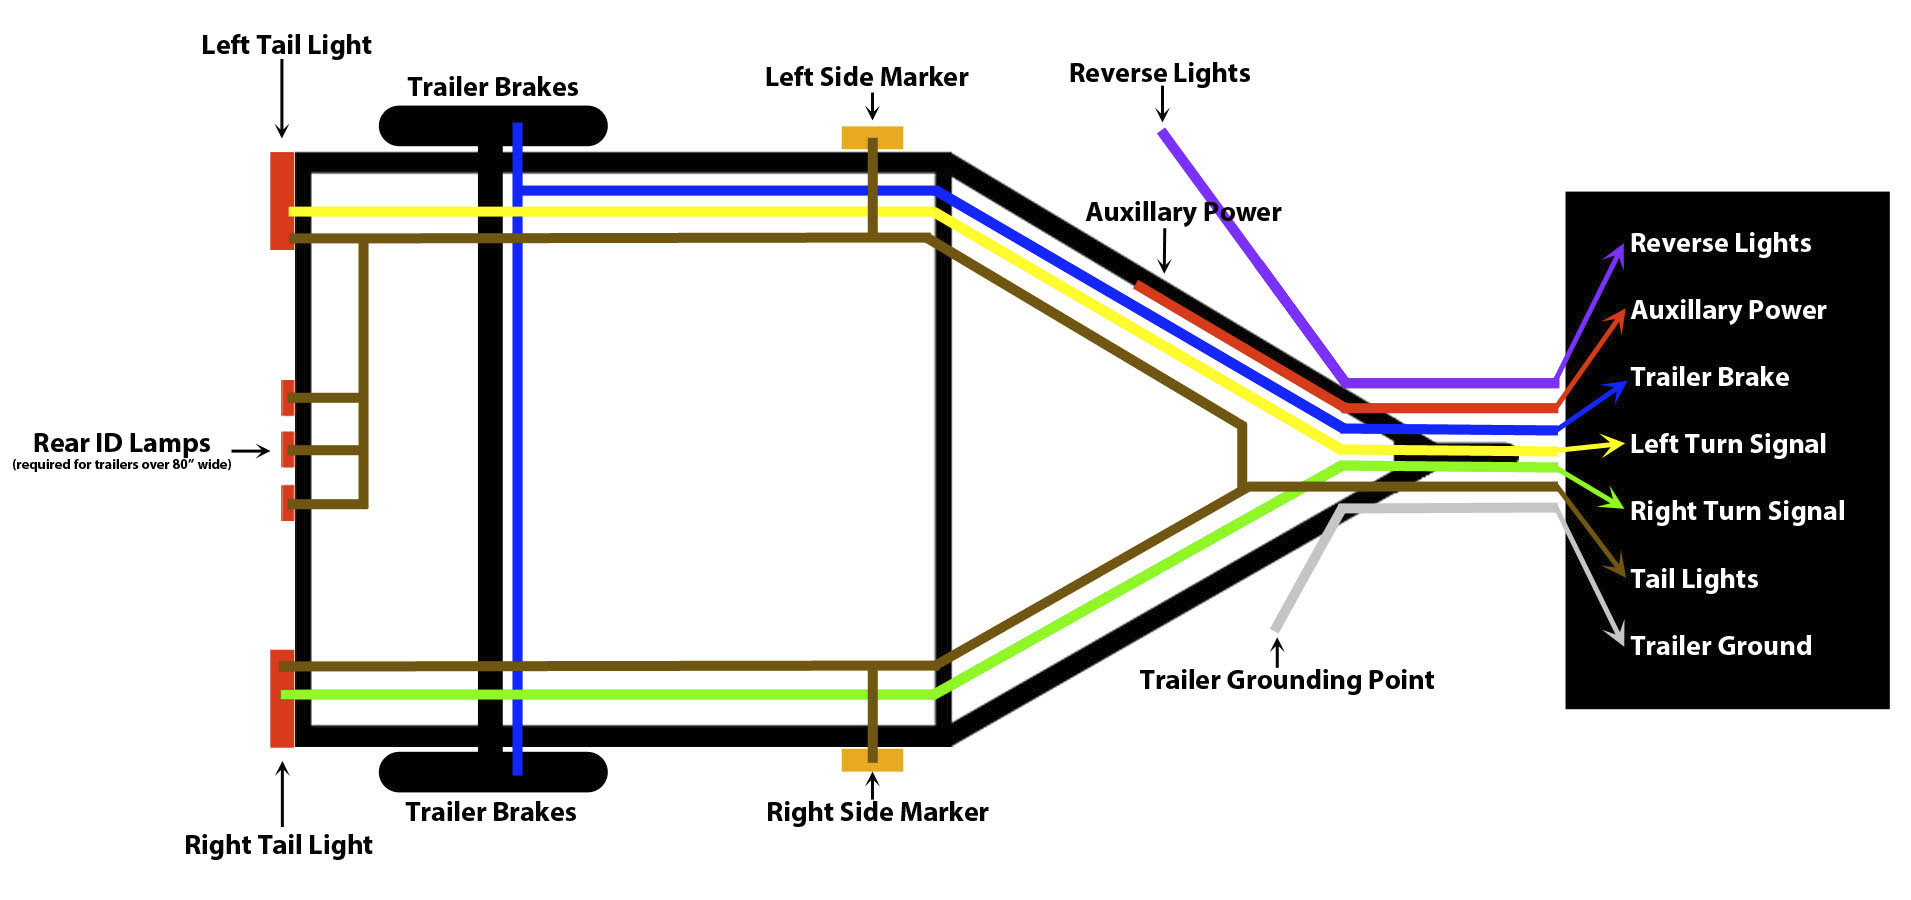 How To Wire Trailer Lights - Trailer Wiring Guide & Videos - Trailer Wiring Connection Diagram